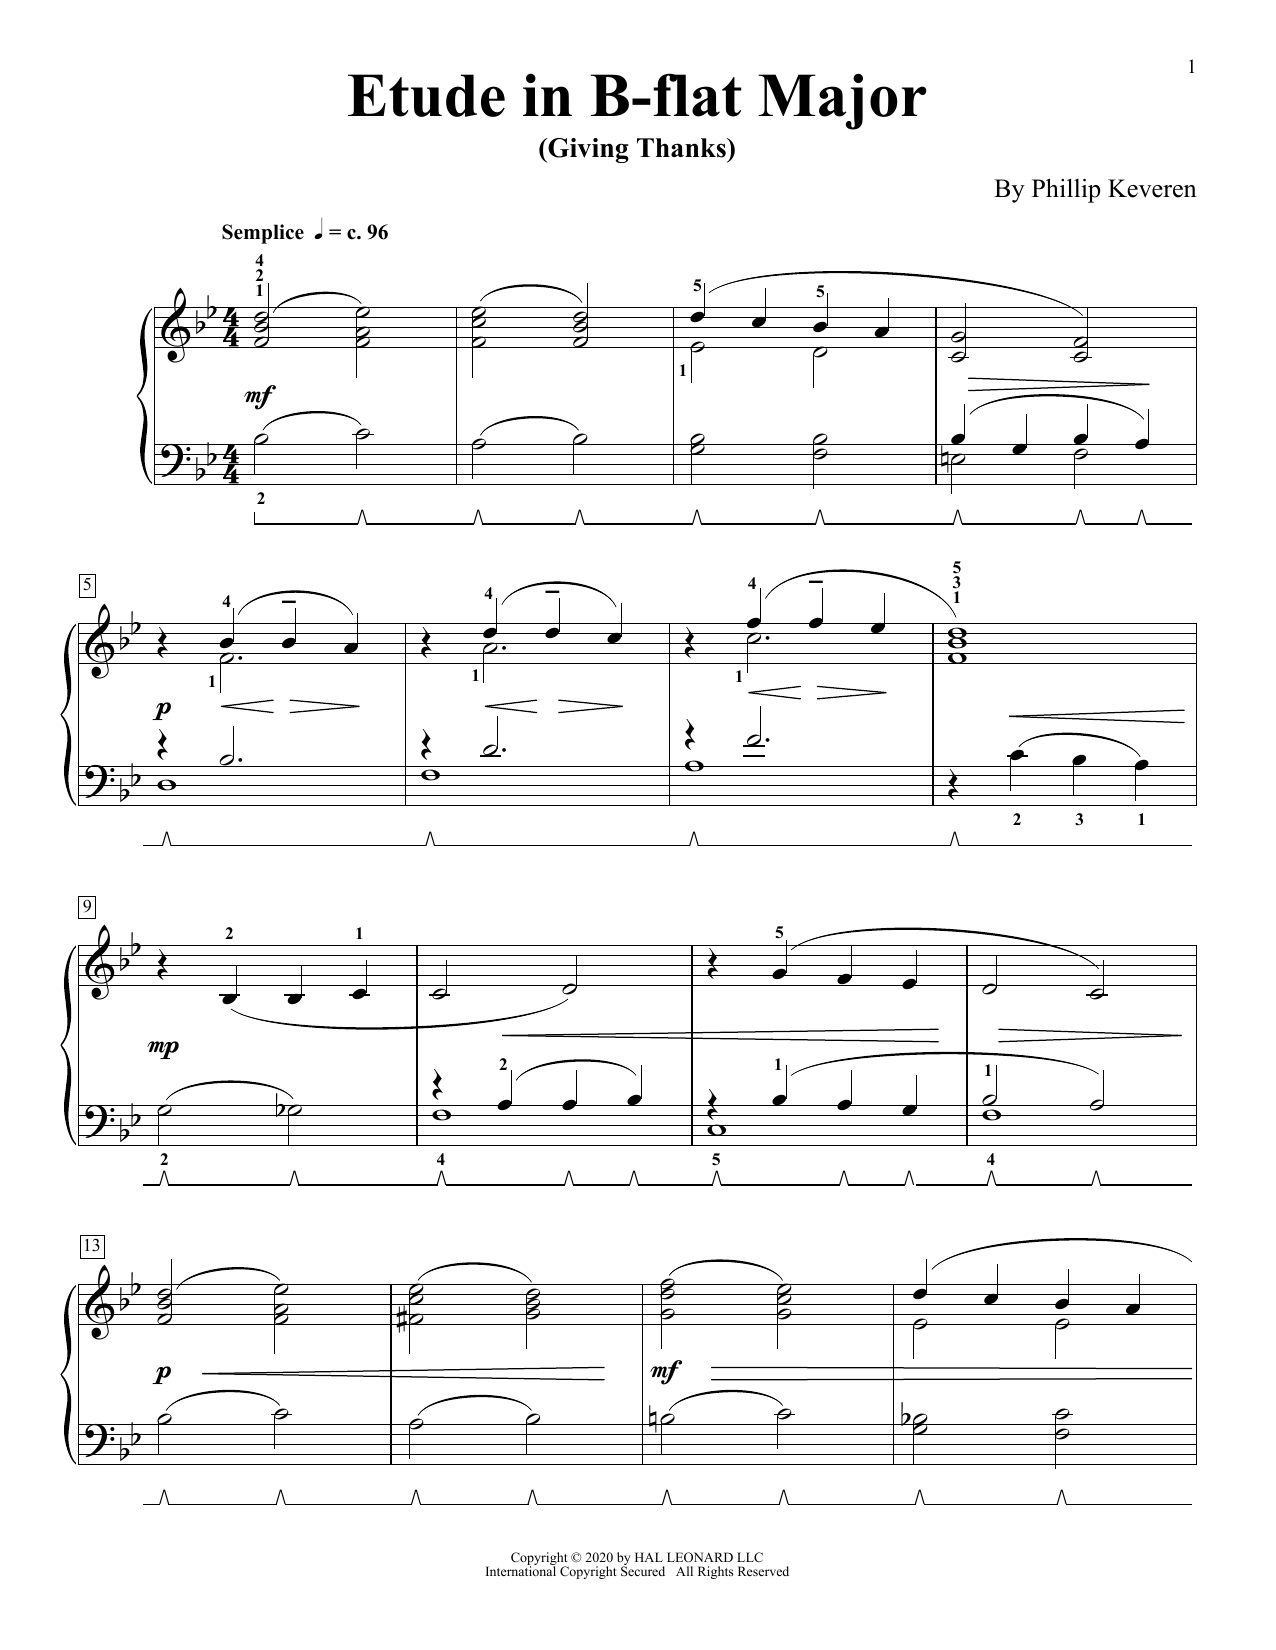 Etude In B-Flat Major (Giving Thanks) (Piano Solo)